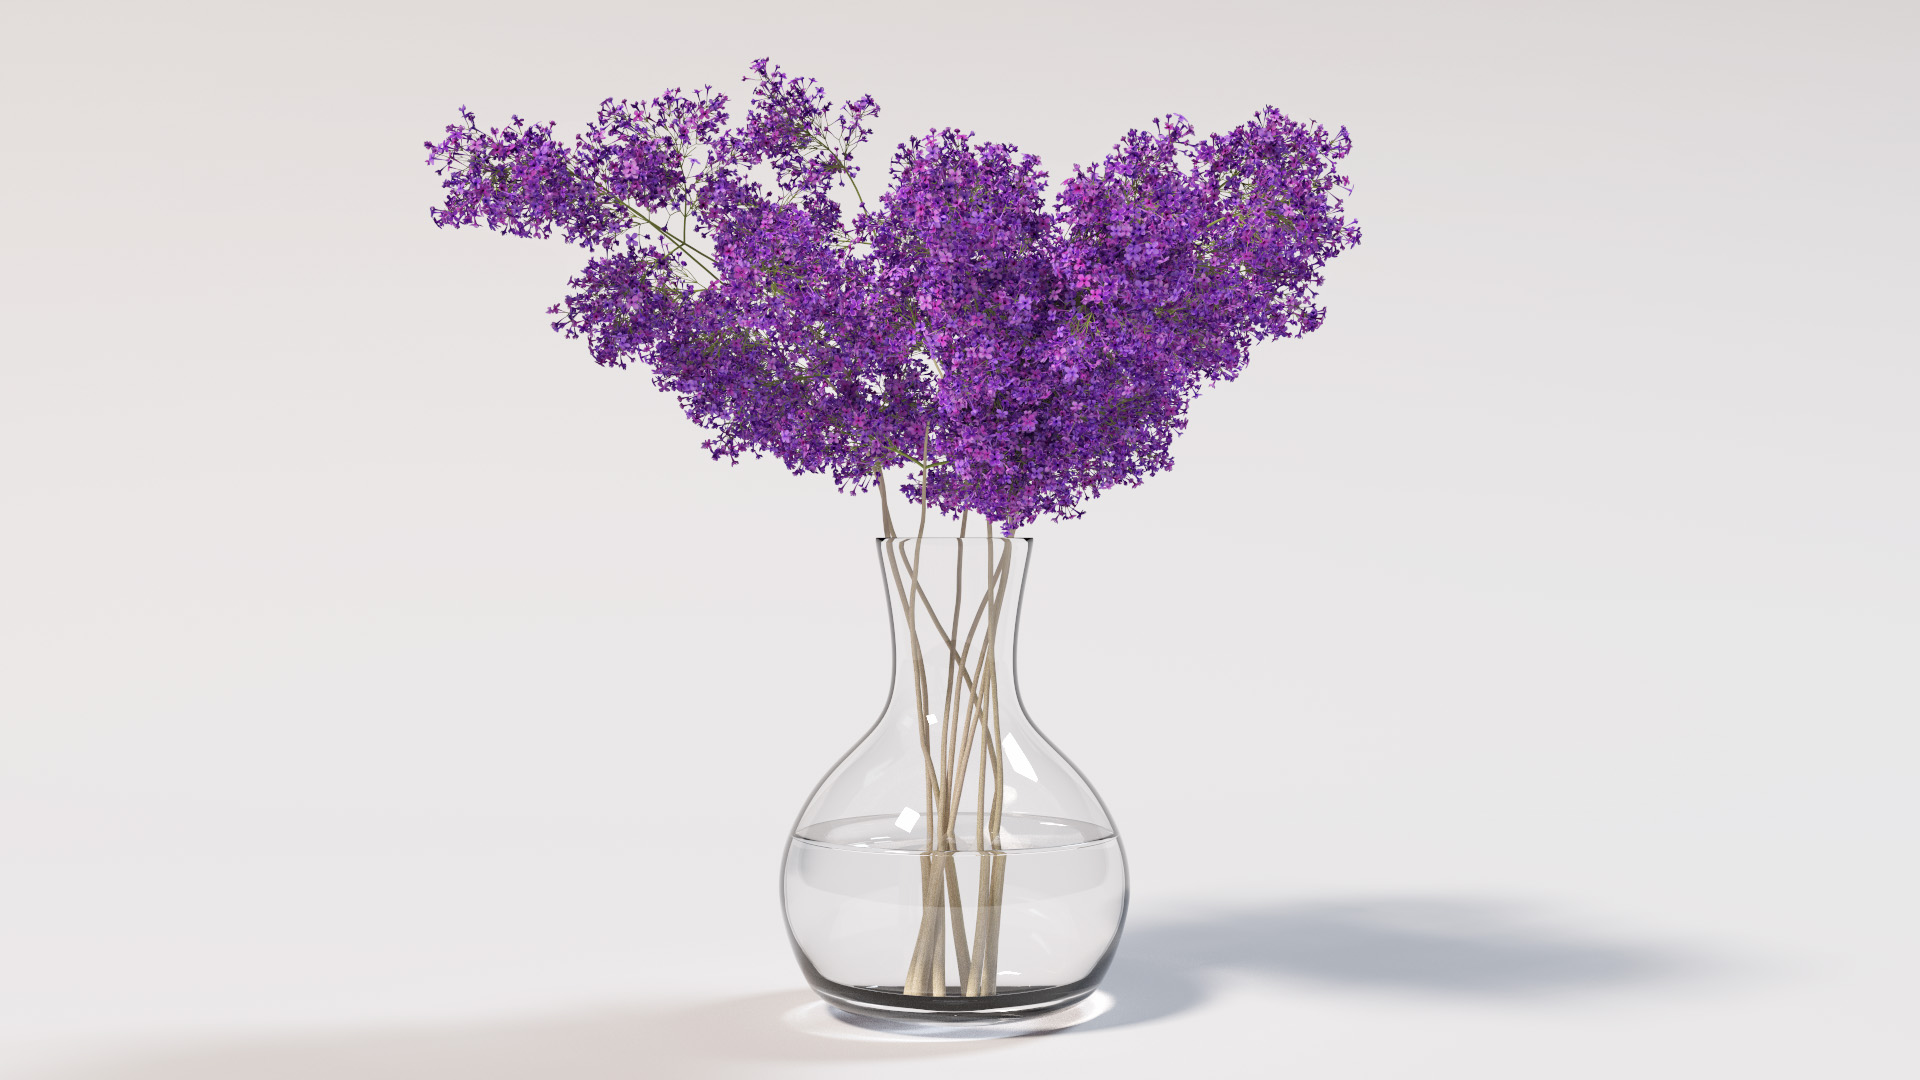 Rendered in Takua a0.5 using BDPT. Note the complex caustics from the vase and water.